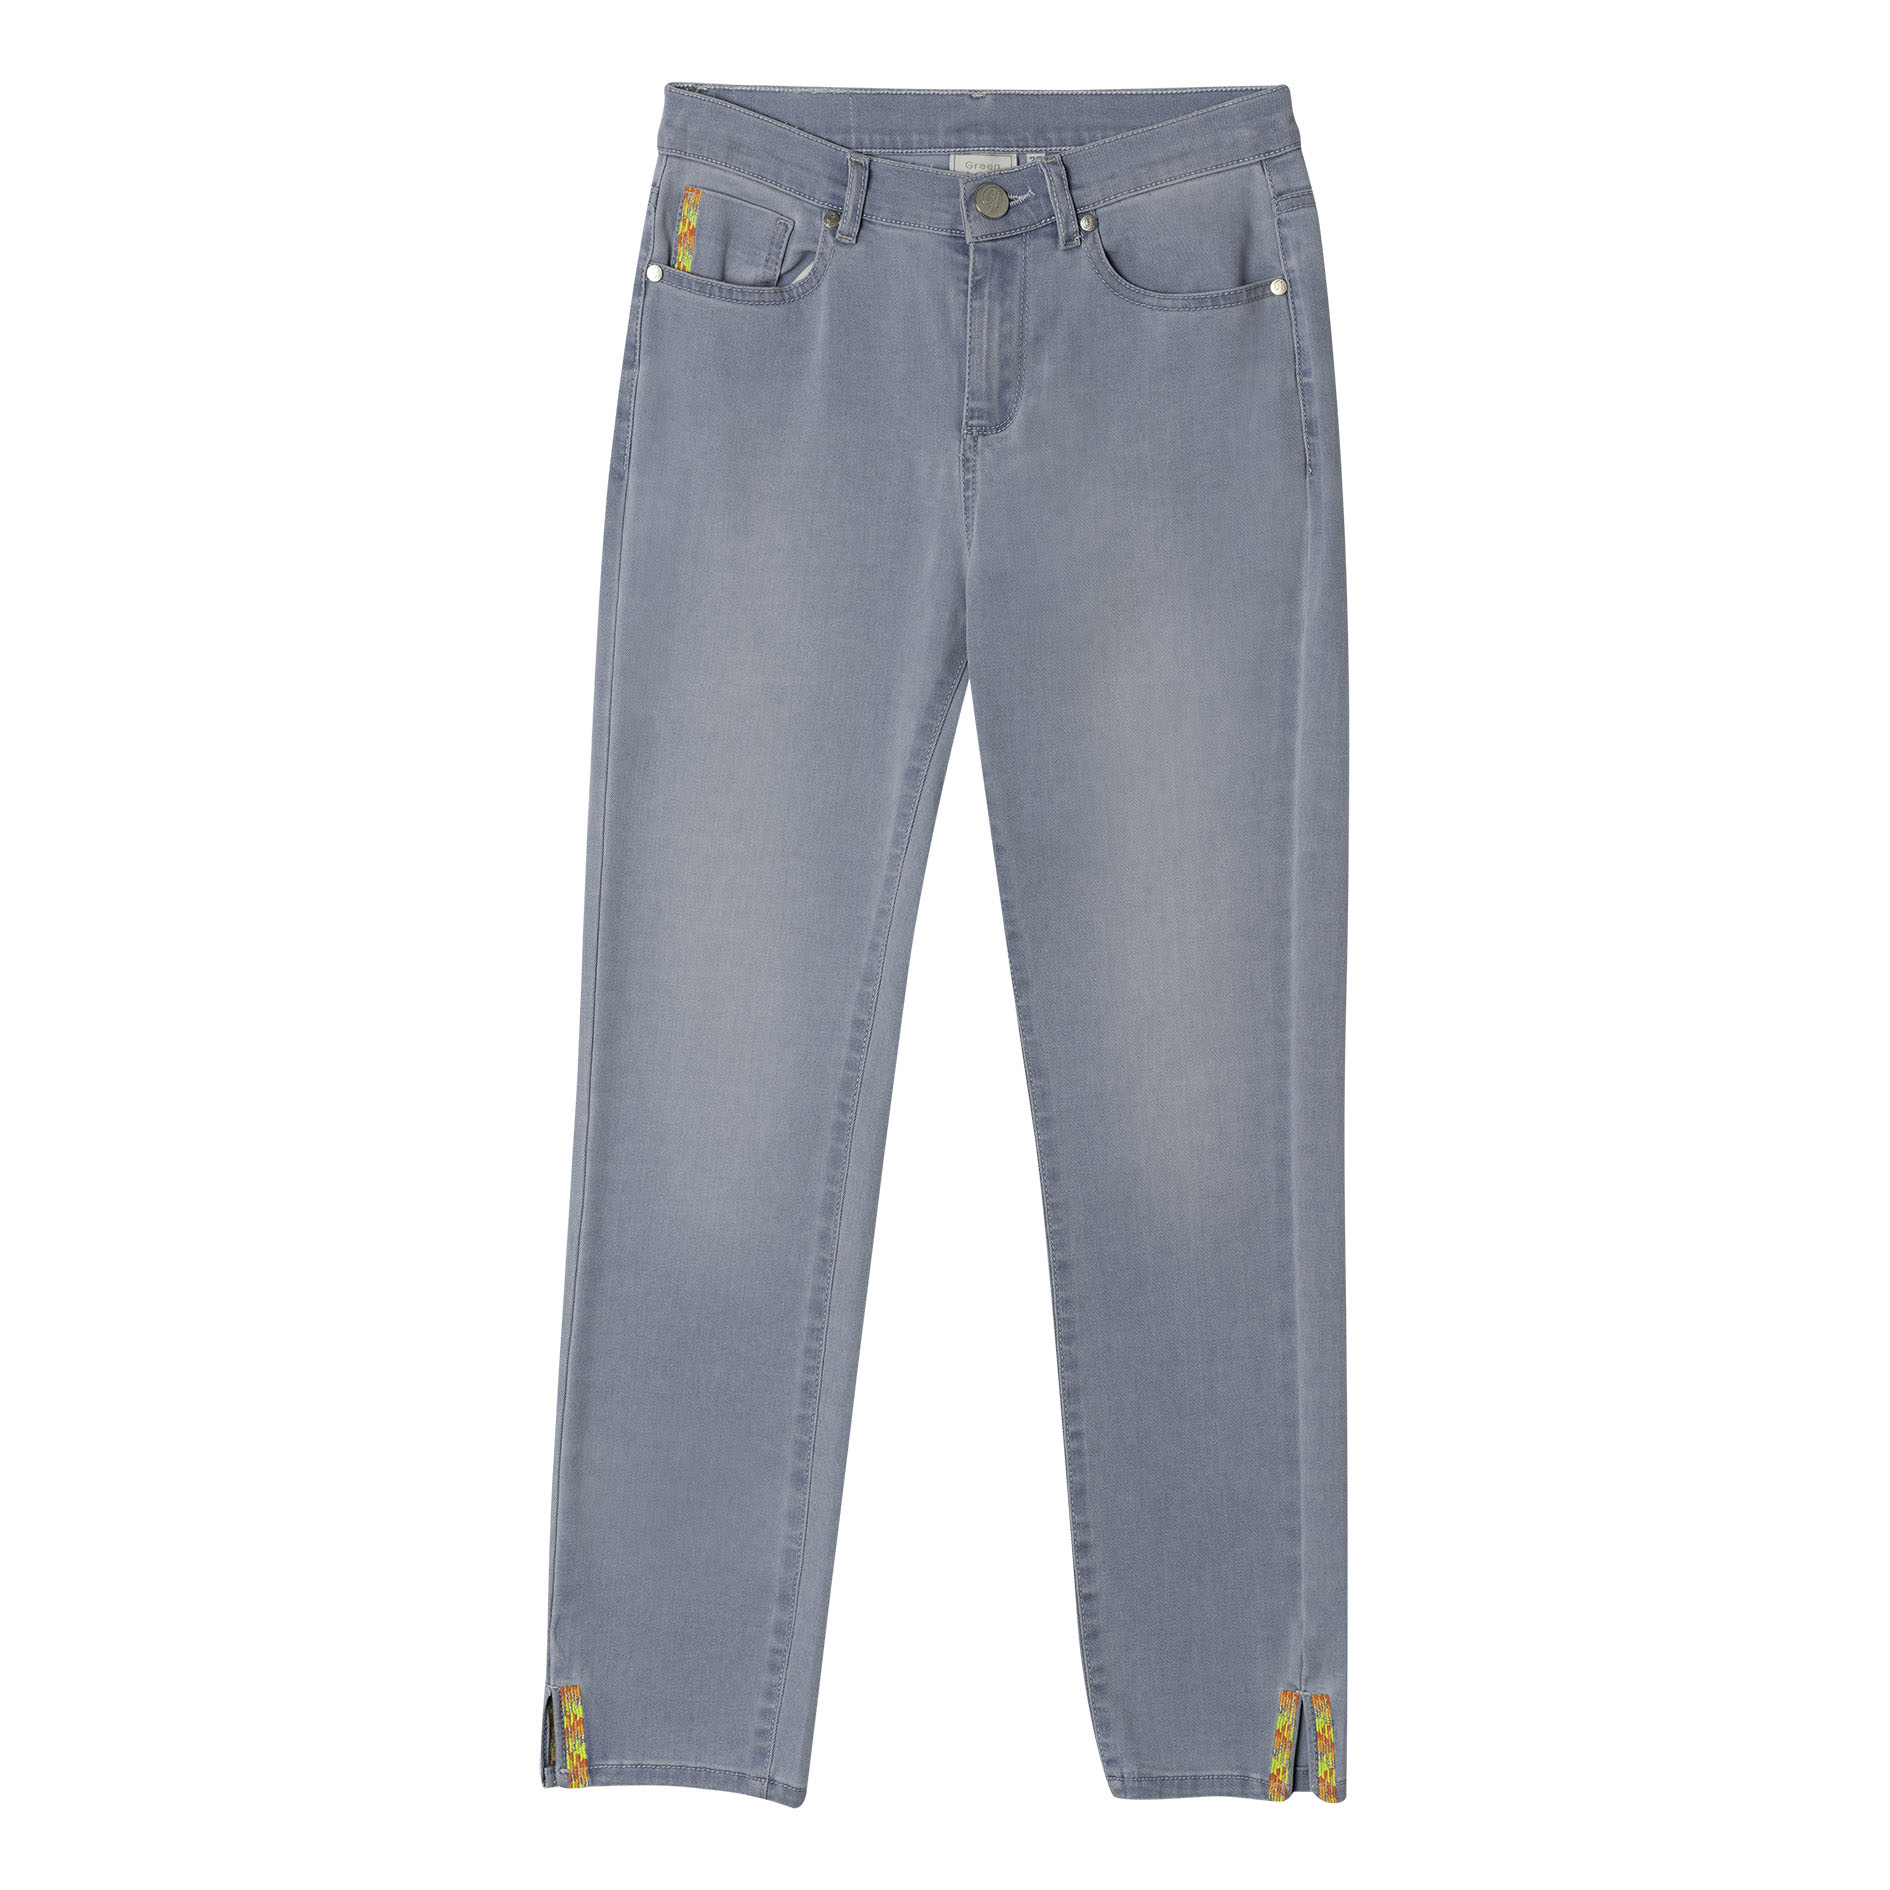 Jeans zomer 2021